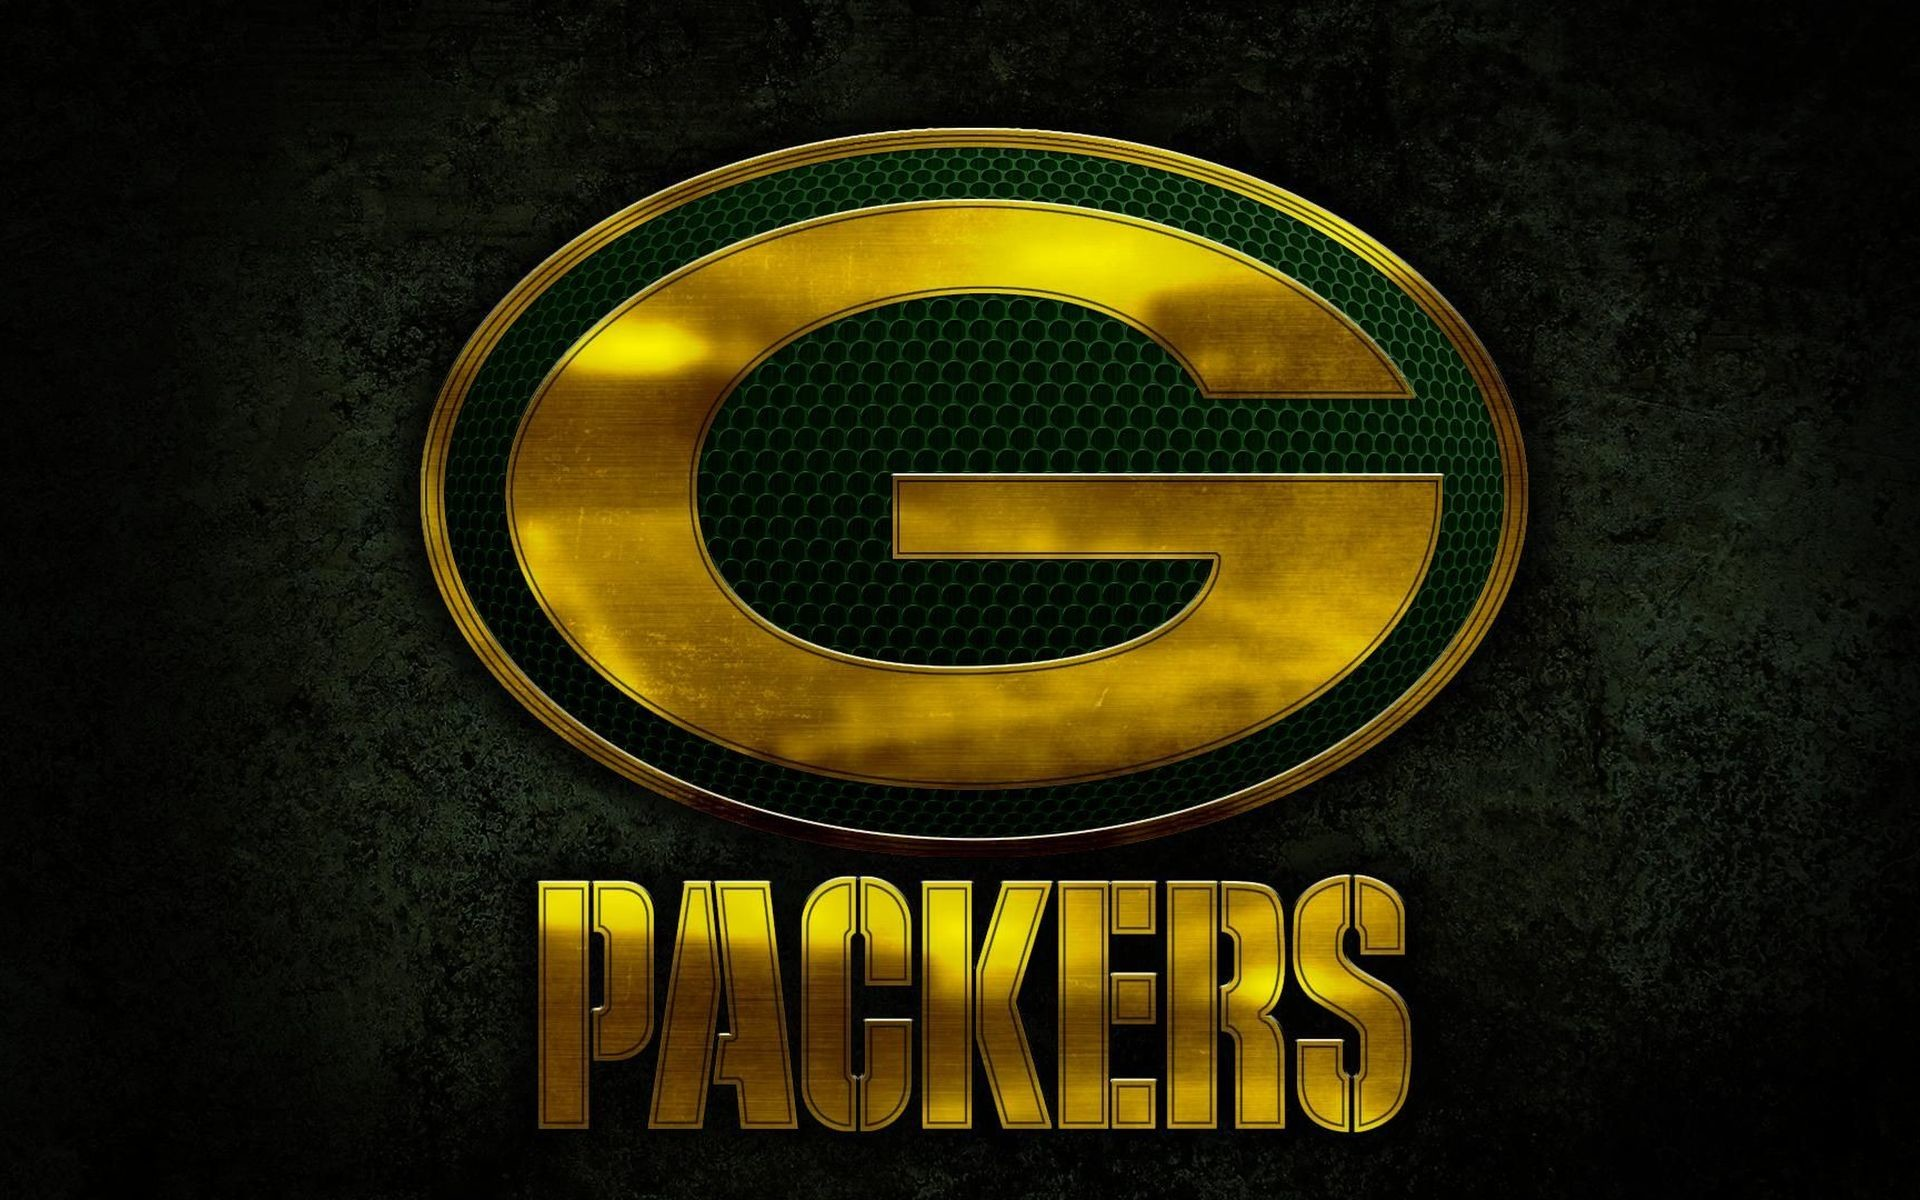 Green Bay Packers Background, Picture, Image · green bay packers wallpaper  graphic …